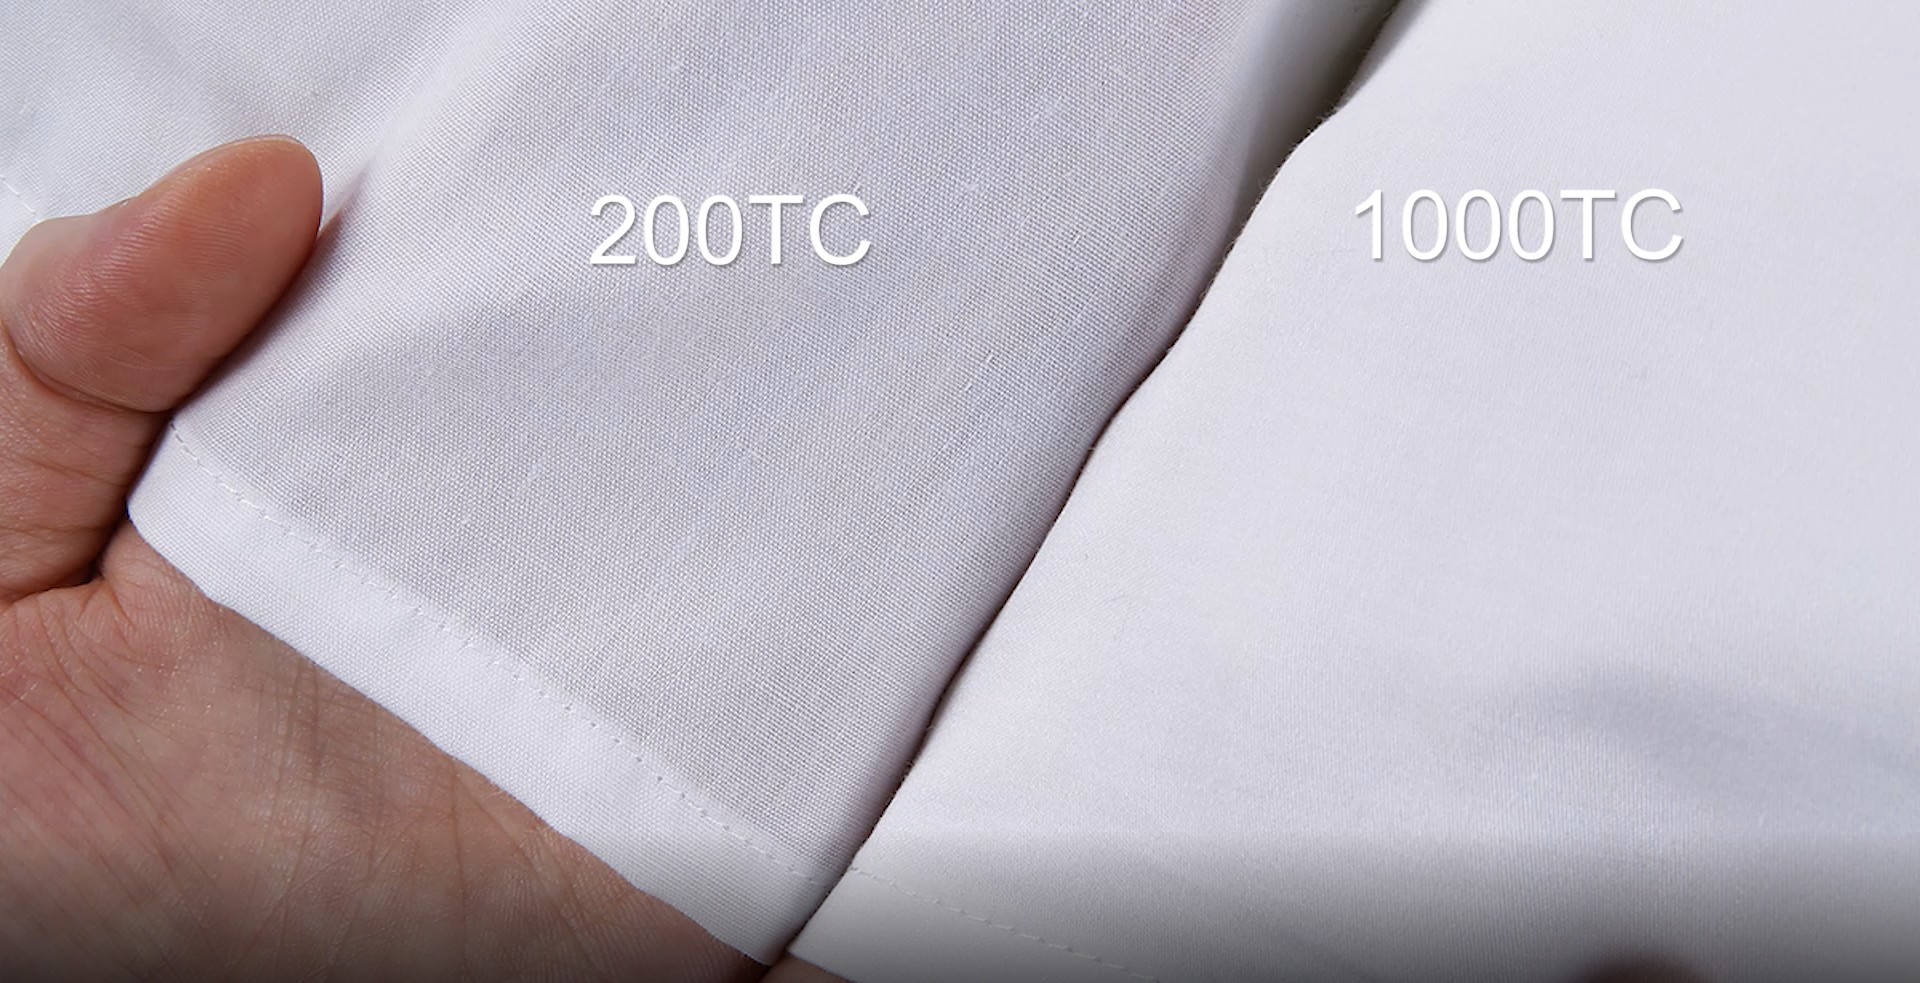 Professional Luxury Hotel Bed Sheets Thread Count Show - ELIYA Hotel Linen Co., Ltd. manufacturers